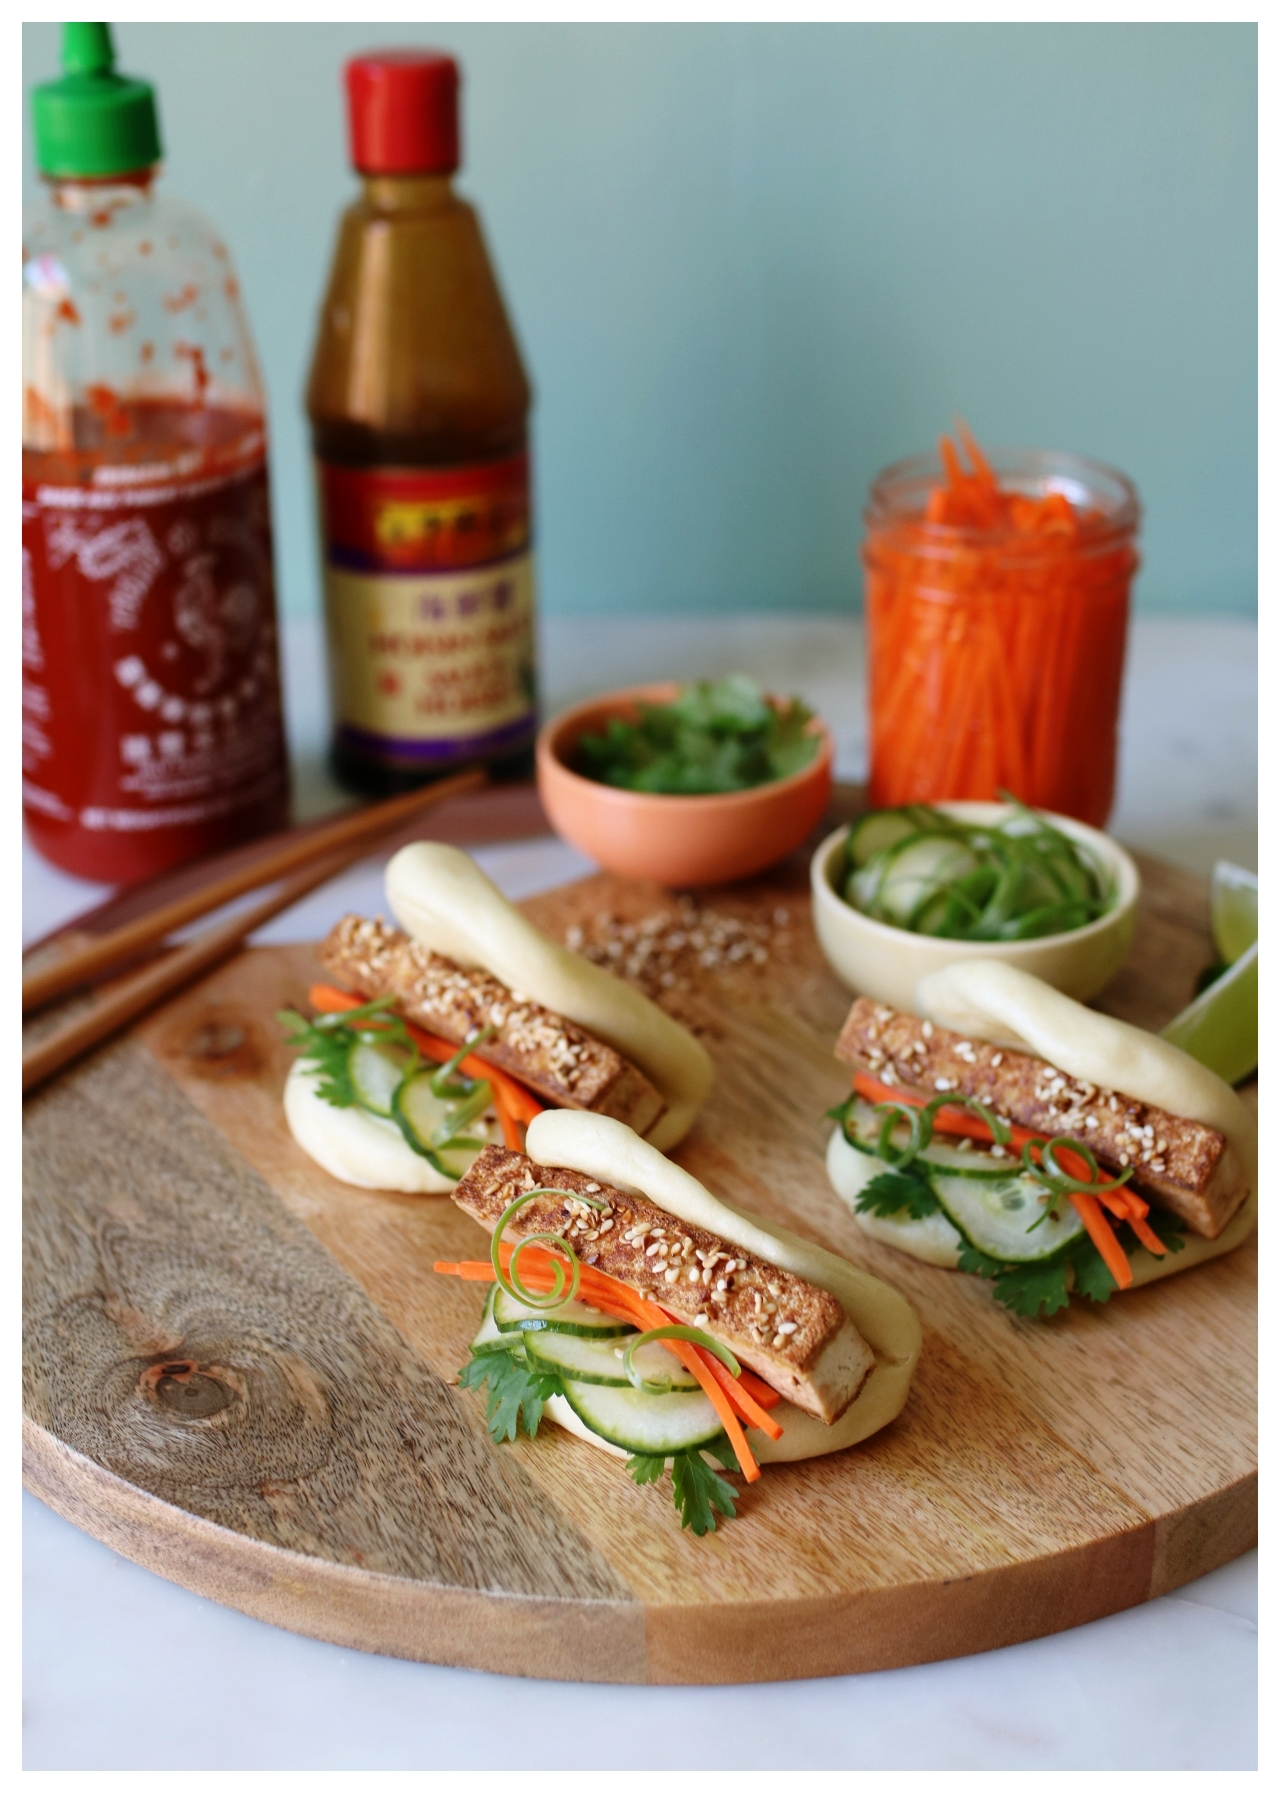 Clamshell Steamed Buns stuffed with sesame tofu, quick picked carrots, cucumber, and cilantro